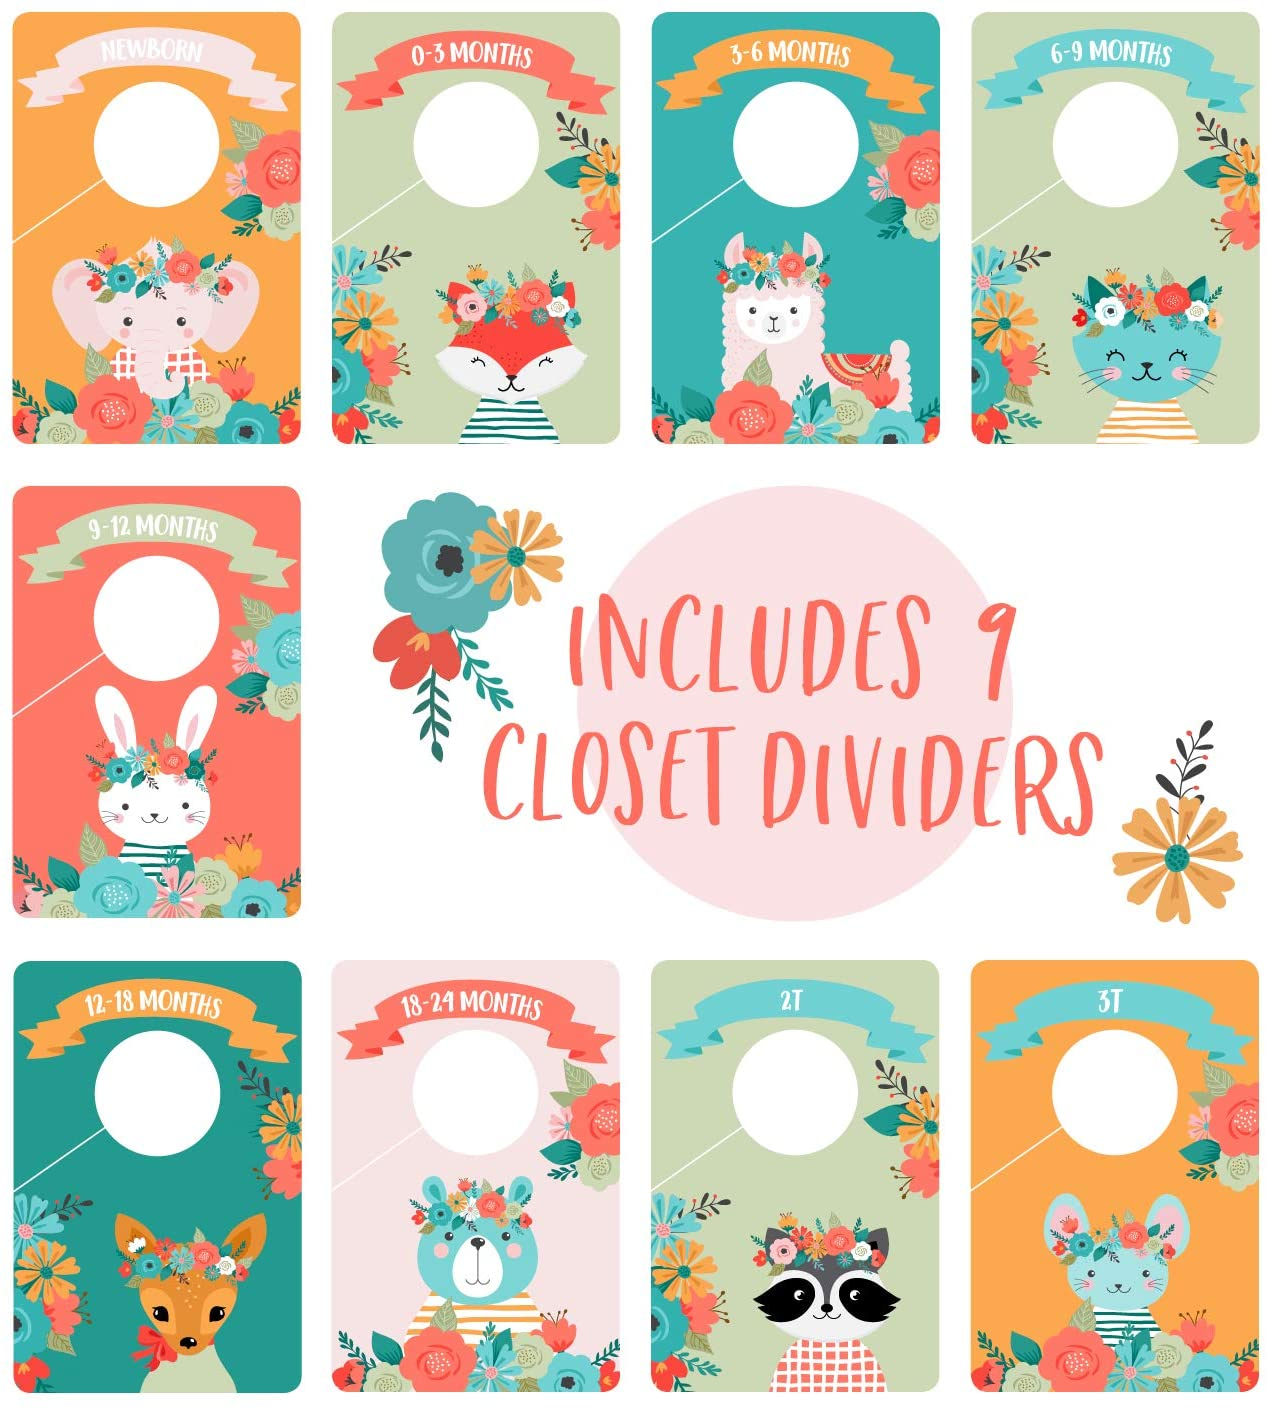 gifts-for-first-time-parents-closet-dividers